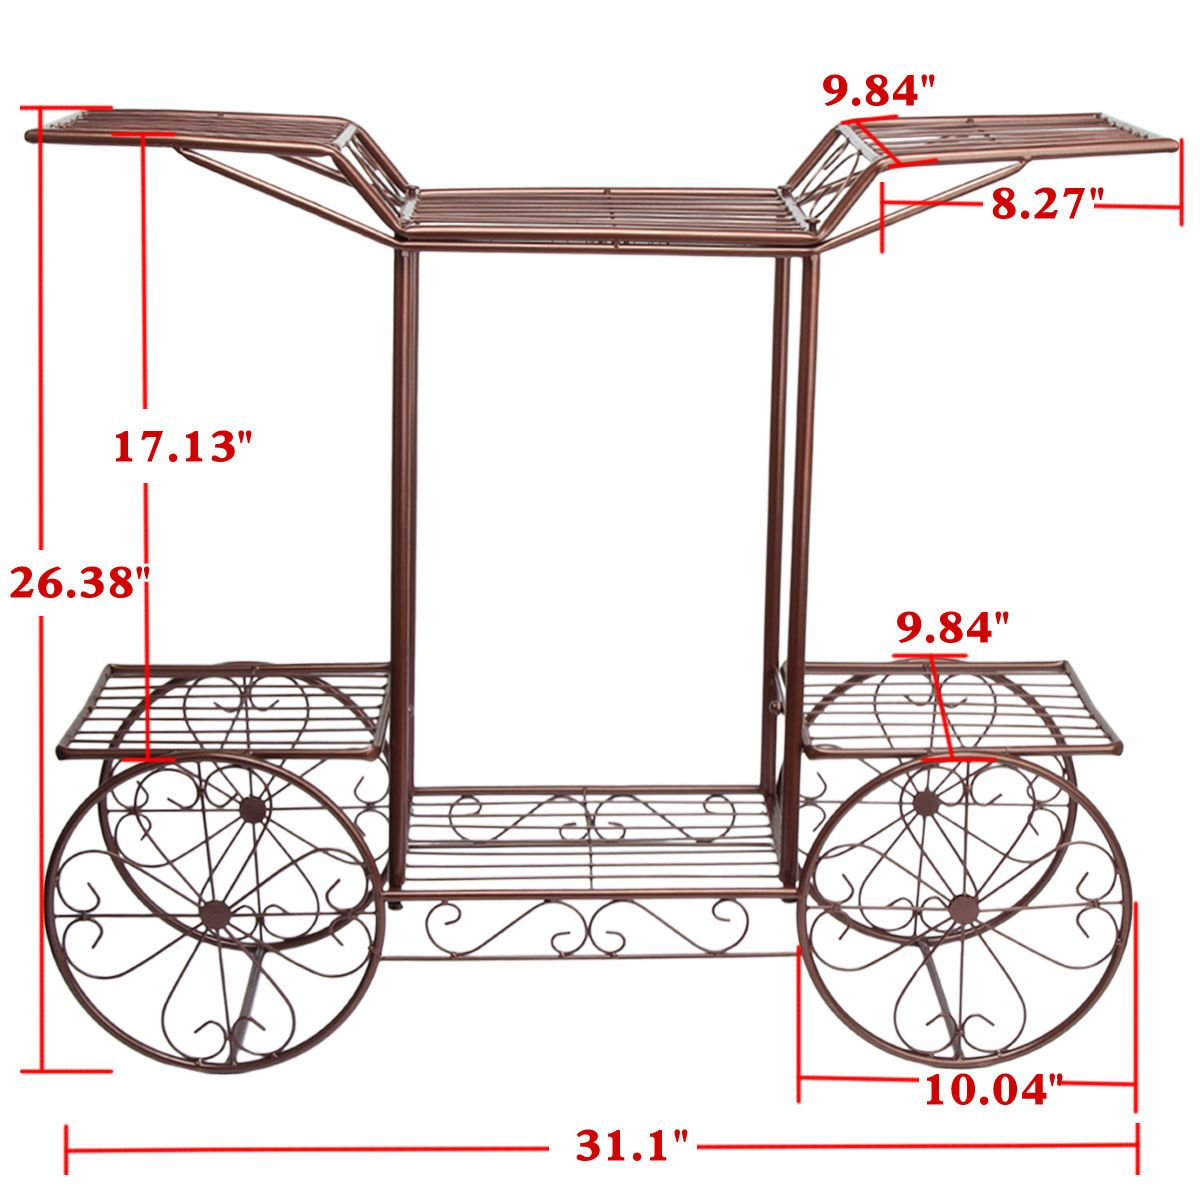 Green Metal Plant Stand Details About 4 Wheeler Metal Flower Rack Display Plant